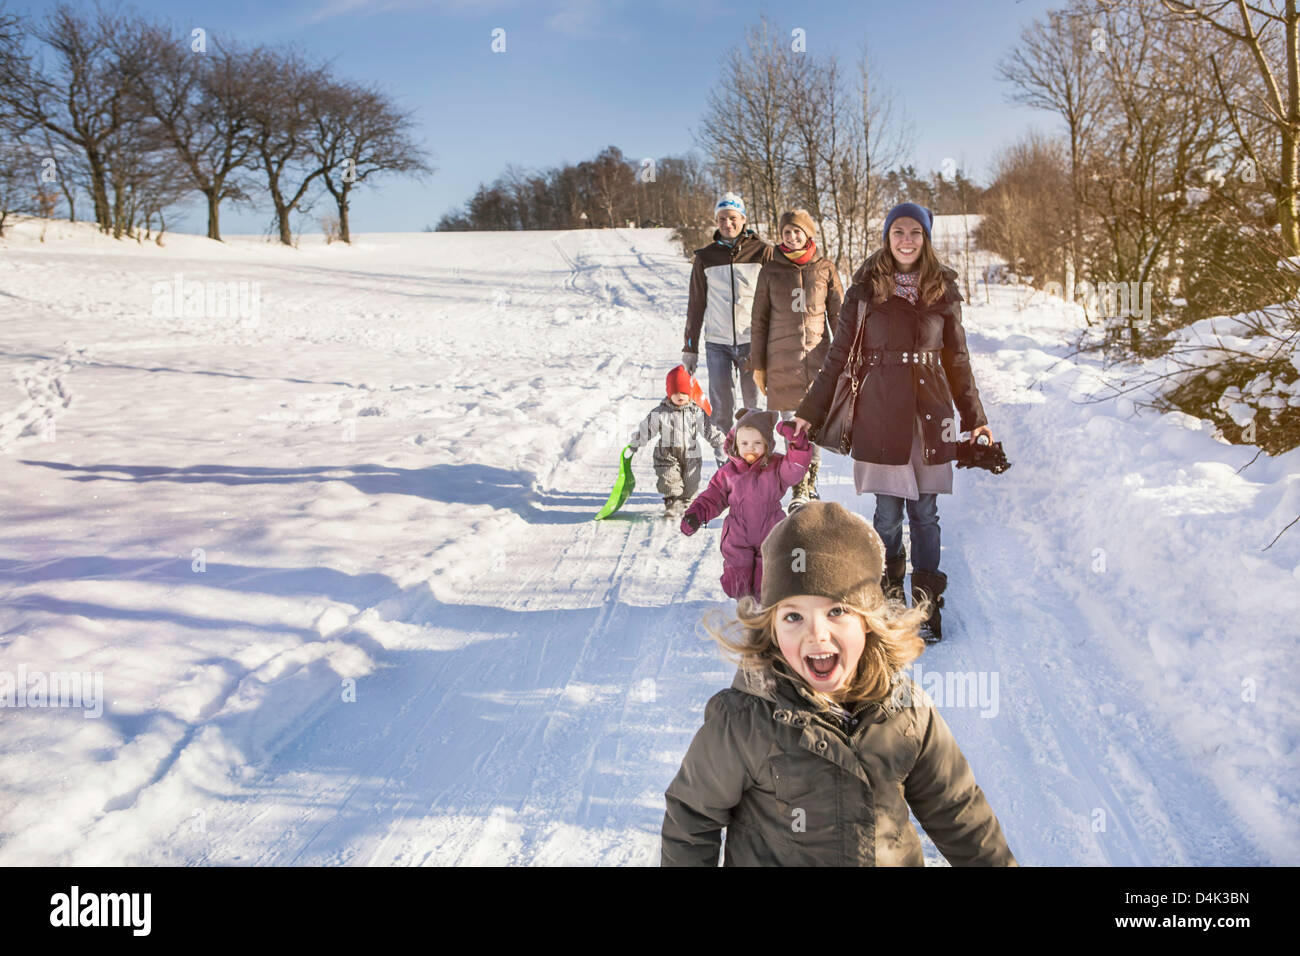 Family walking together in snow Photo Stock